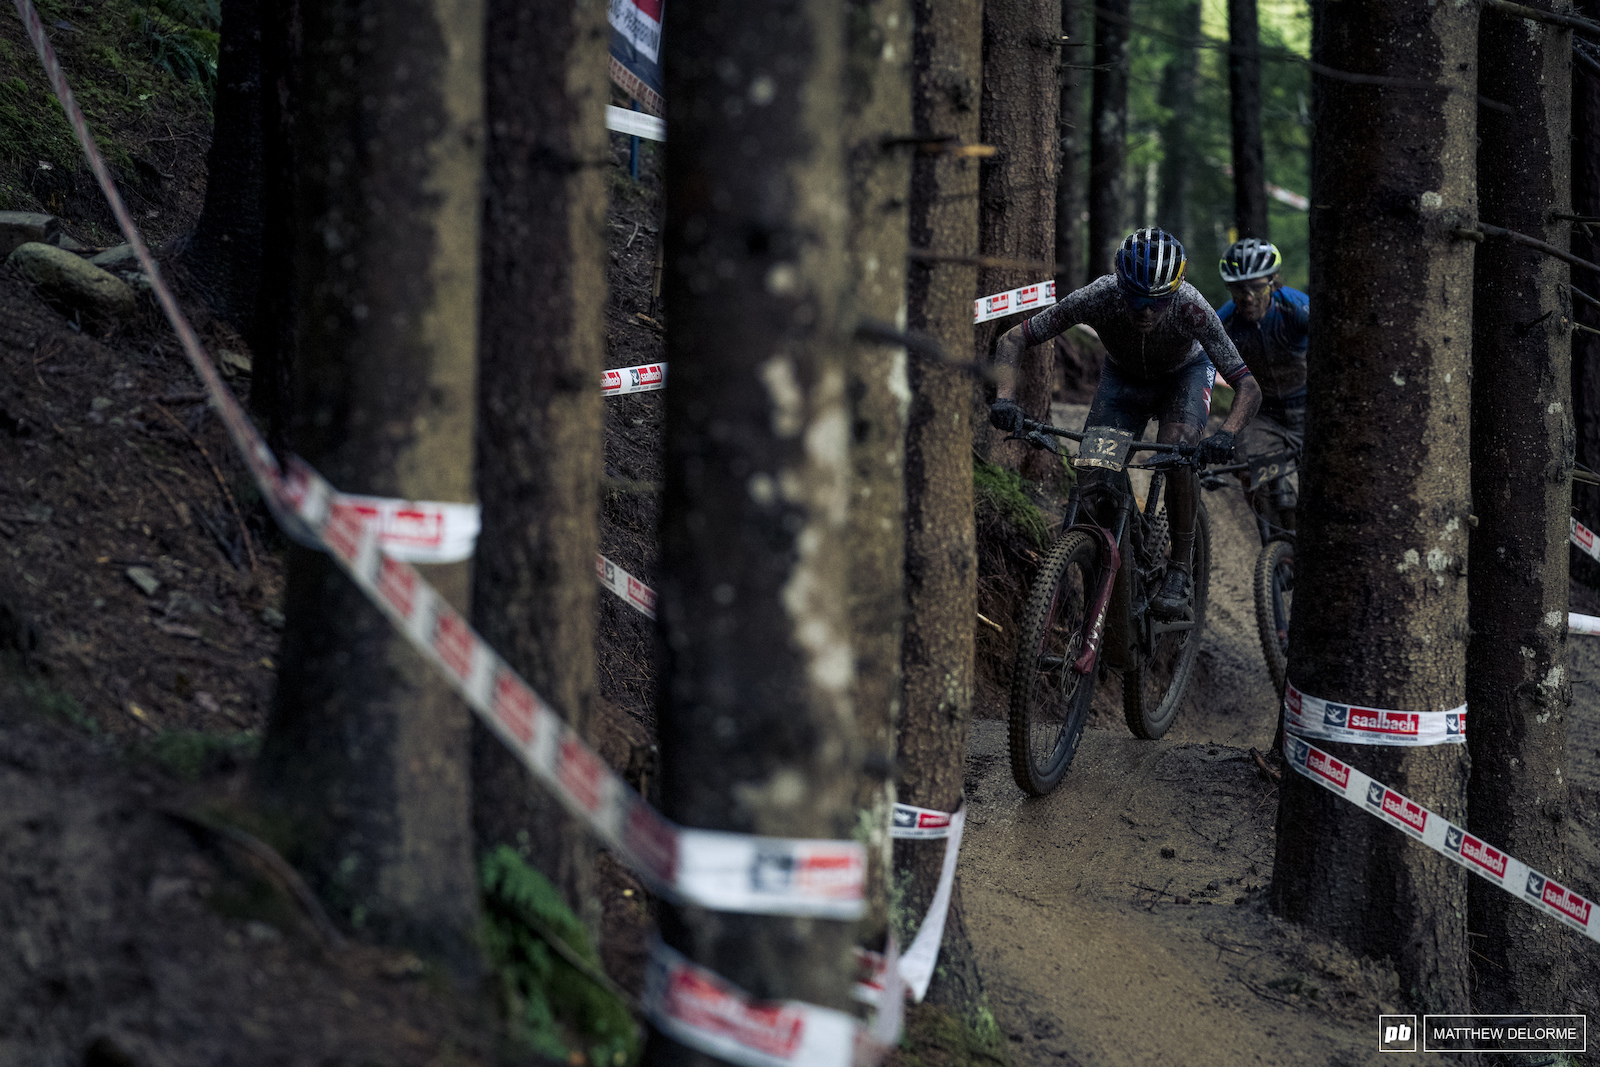 Tom Pidcock on his wat to the win here at the Leogang Covid-19 E MTB worlds.